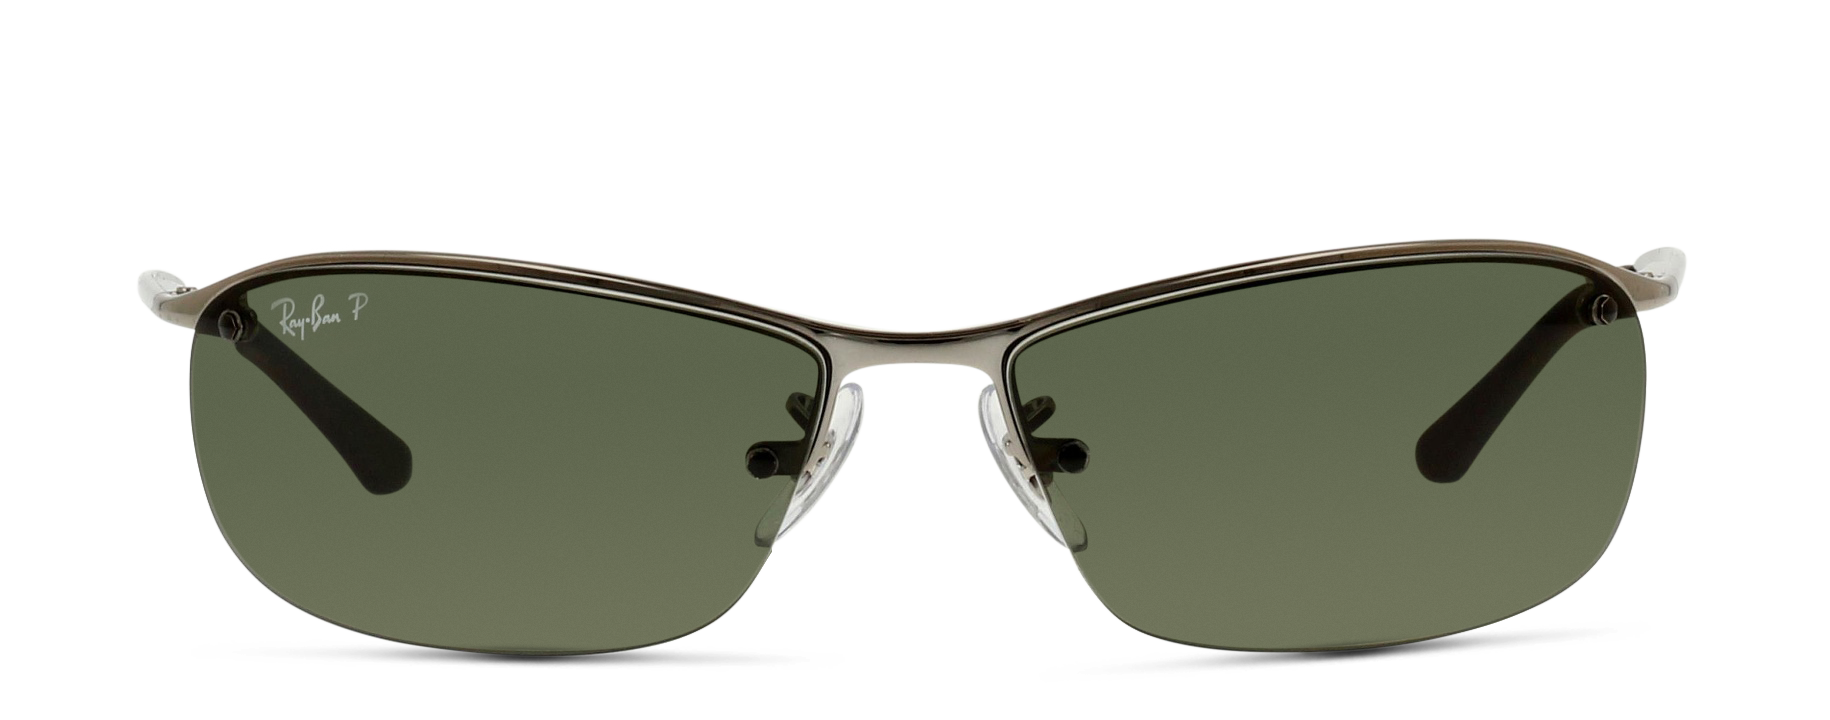 Front Ray-Ban Ray-Ban 3183 004/9A 63/15 Zilver/Groen